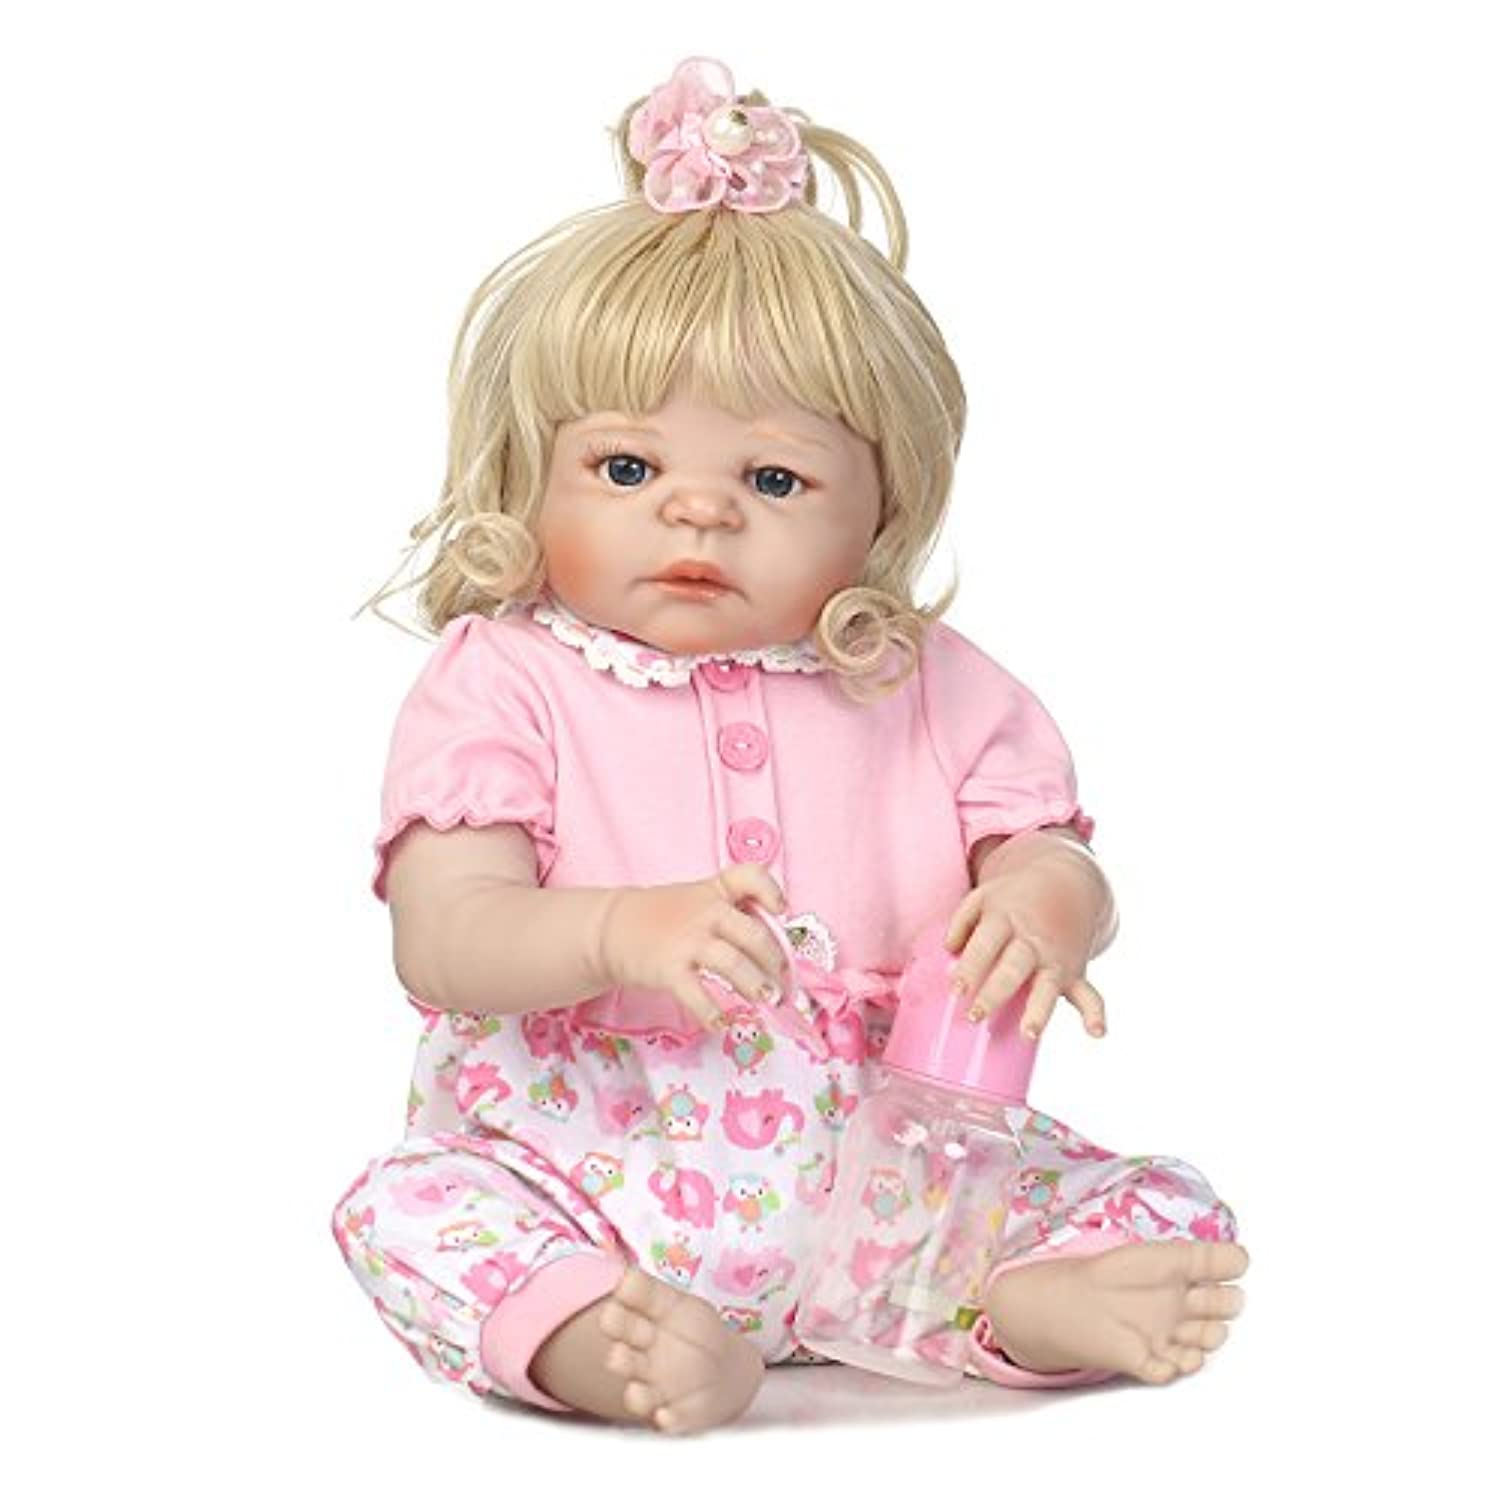 SanyDoll Rebornベビー人形ソフトSilicone 22インチ55 cm磁気Lovely Lifelike Cute Lovely Baby b0763lr3yb